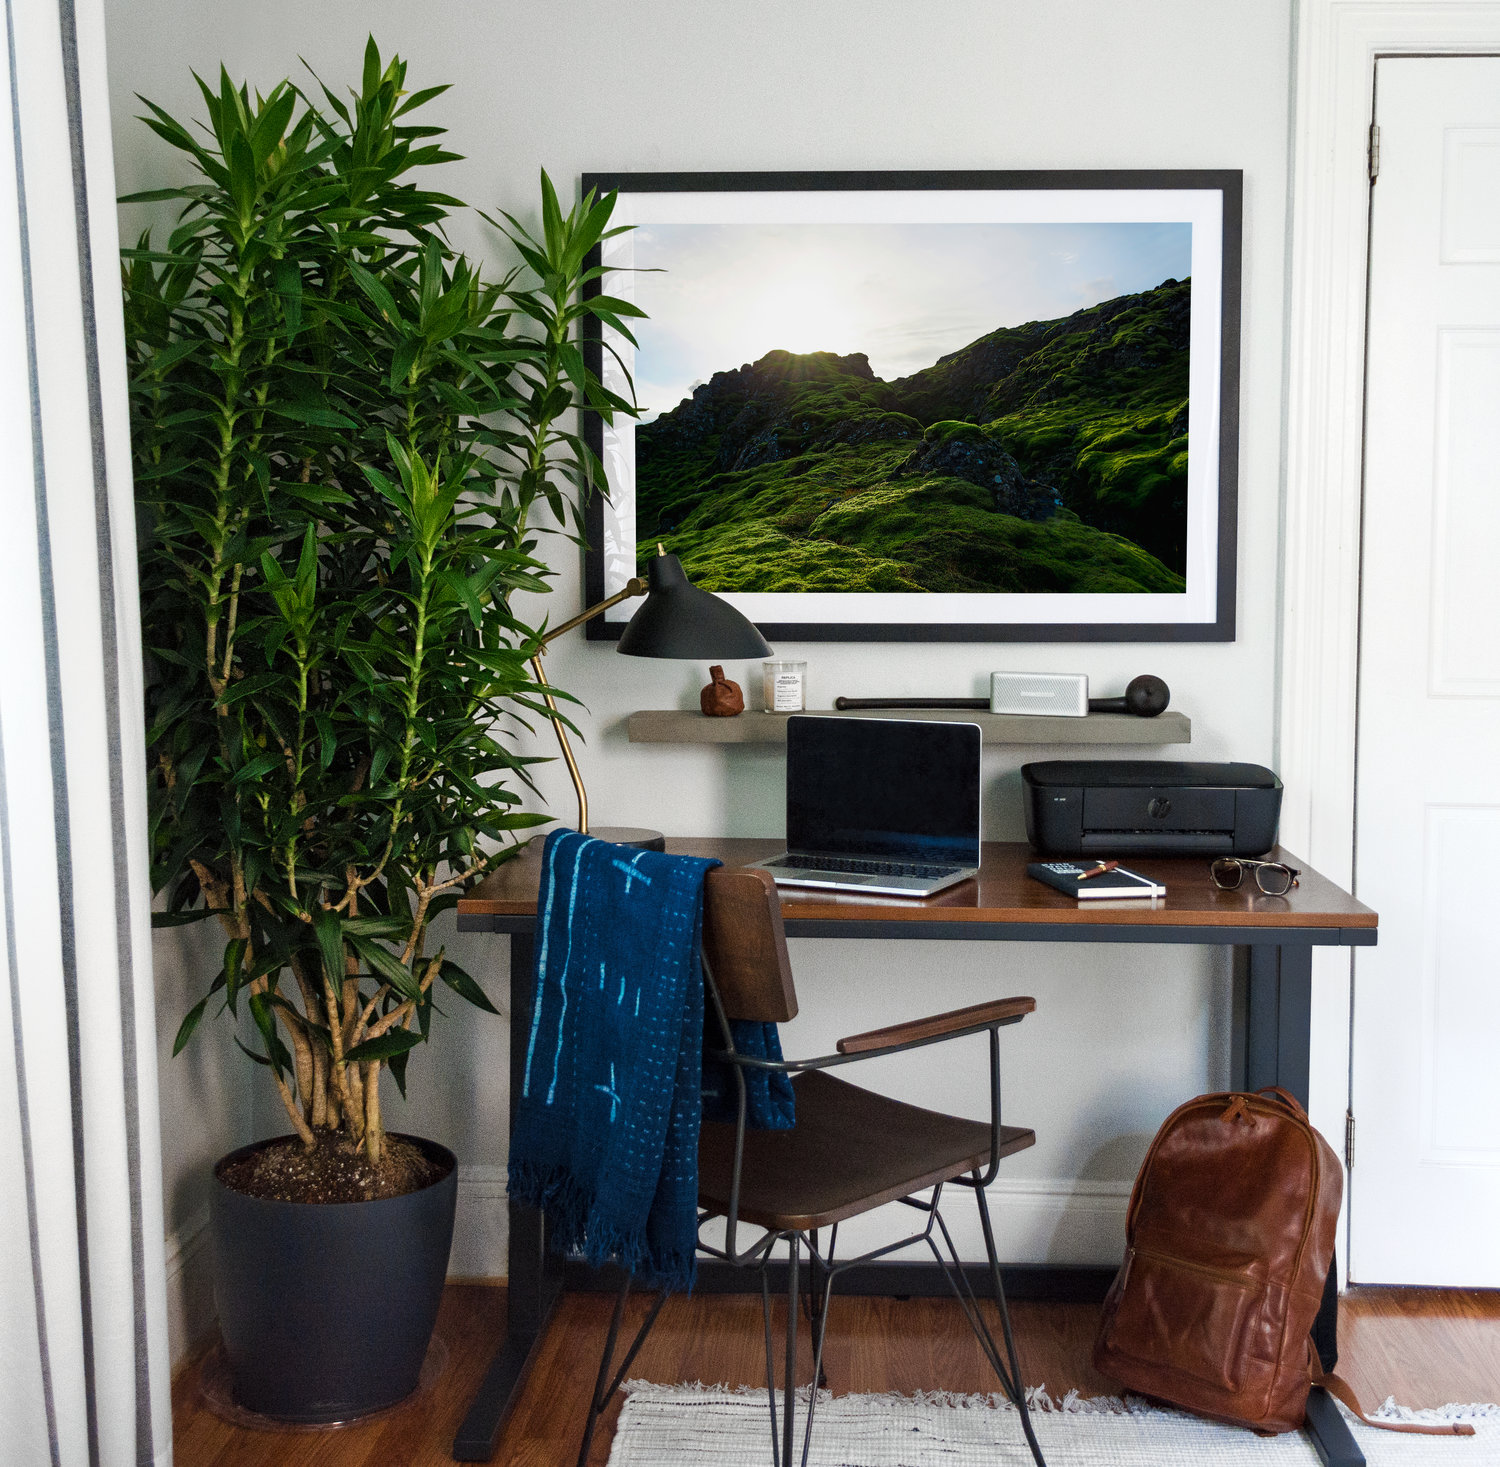 Custom framing large photographs